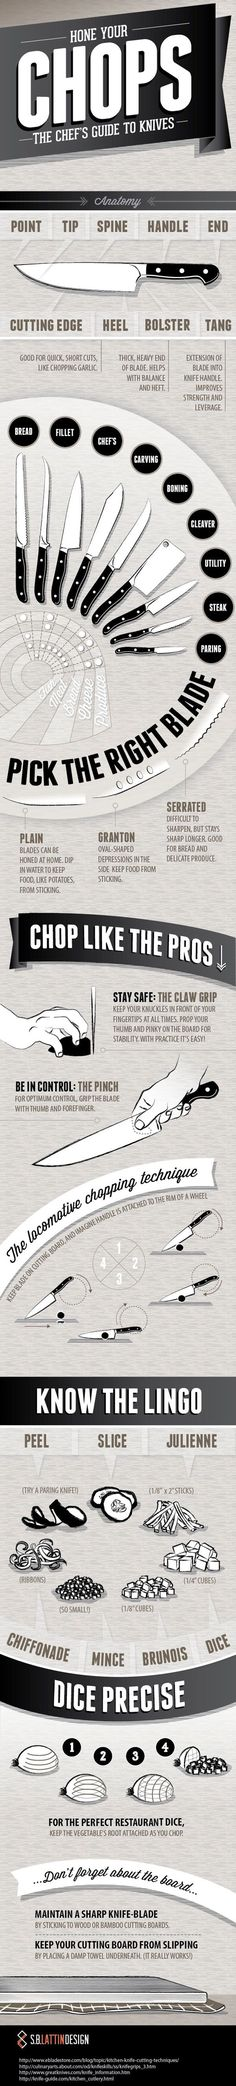 Guide to Knives & Chopping (Infographic)